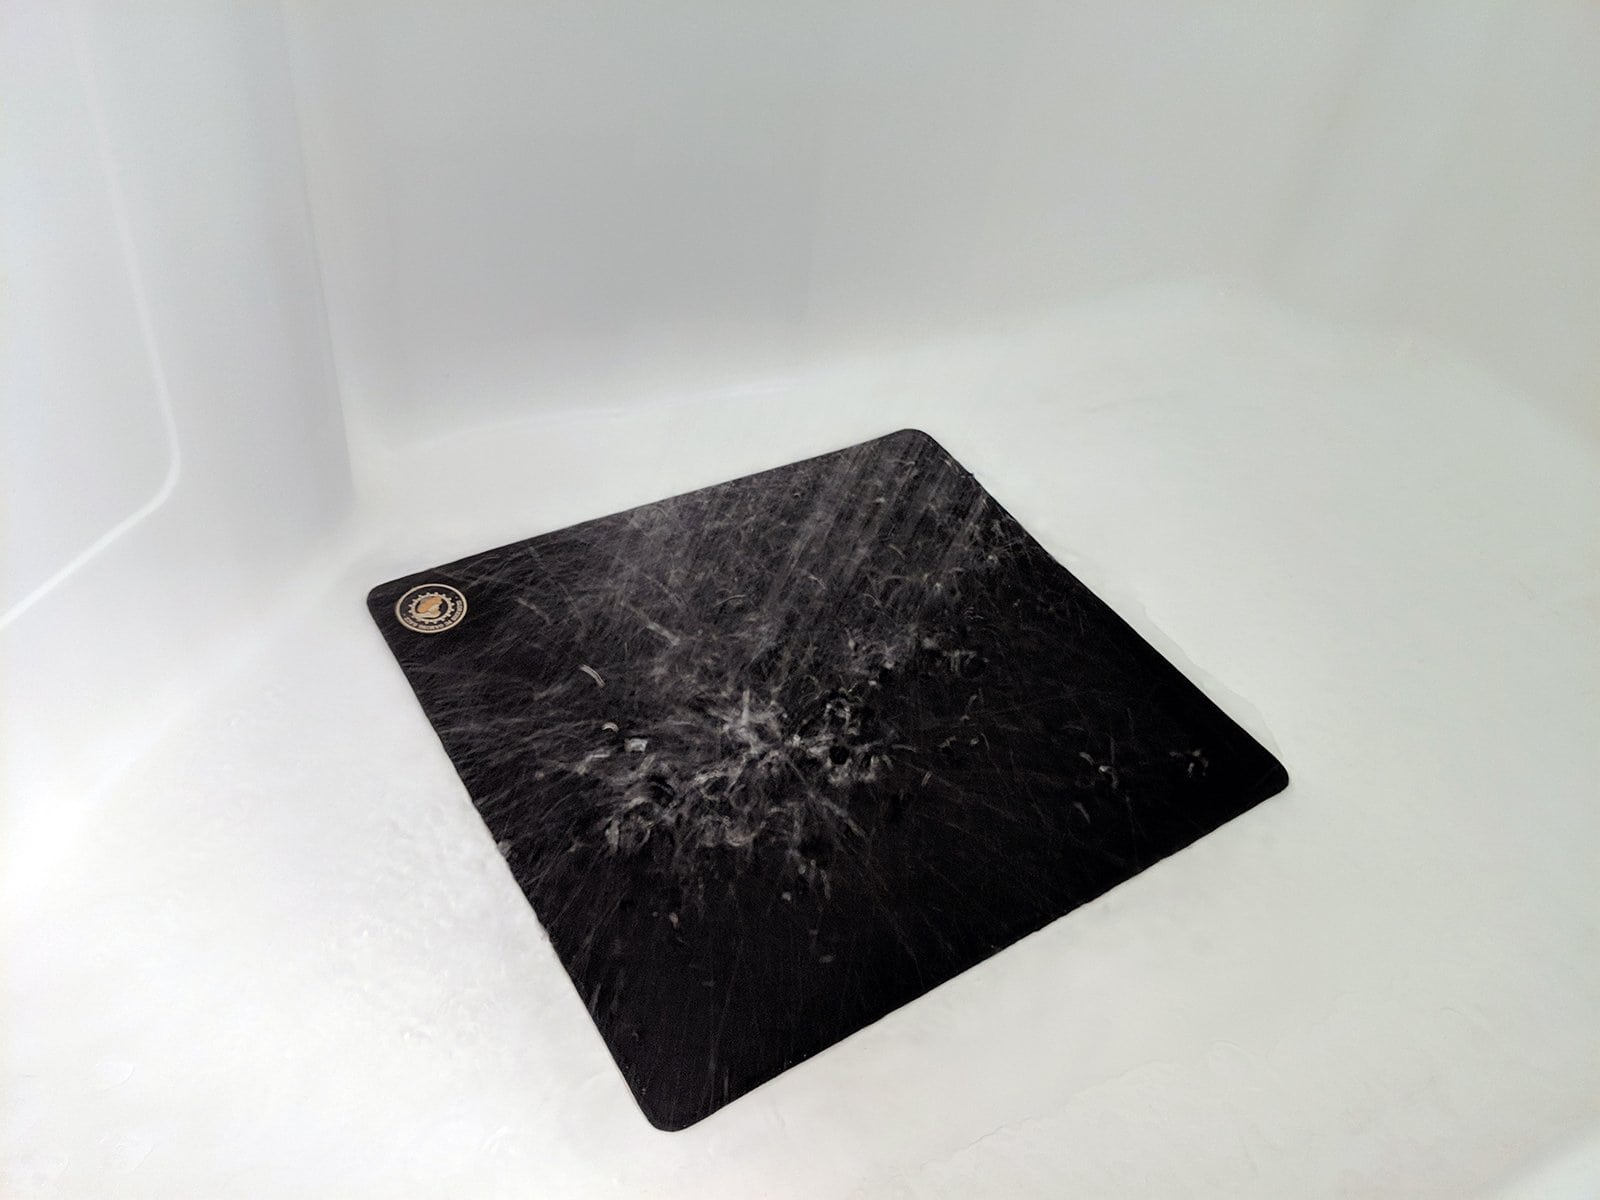 Clean mousepad with warm water